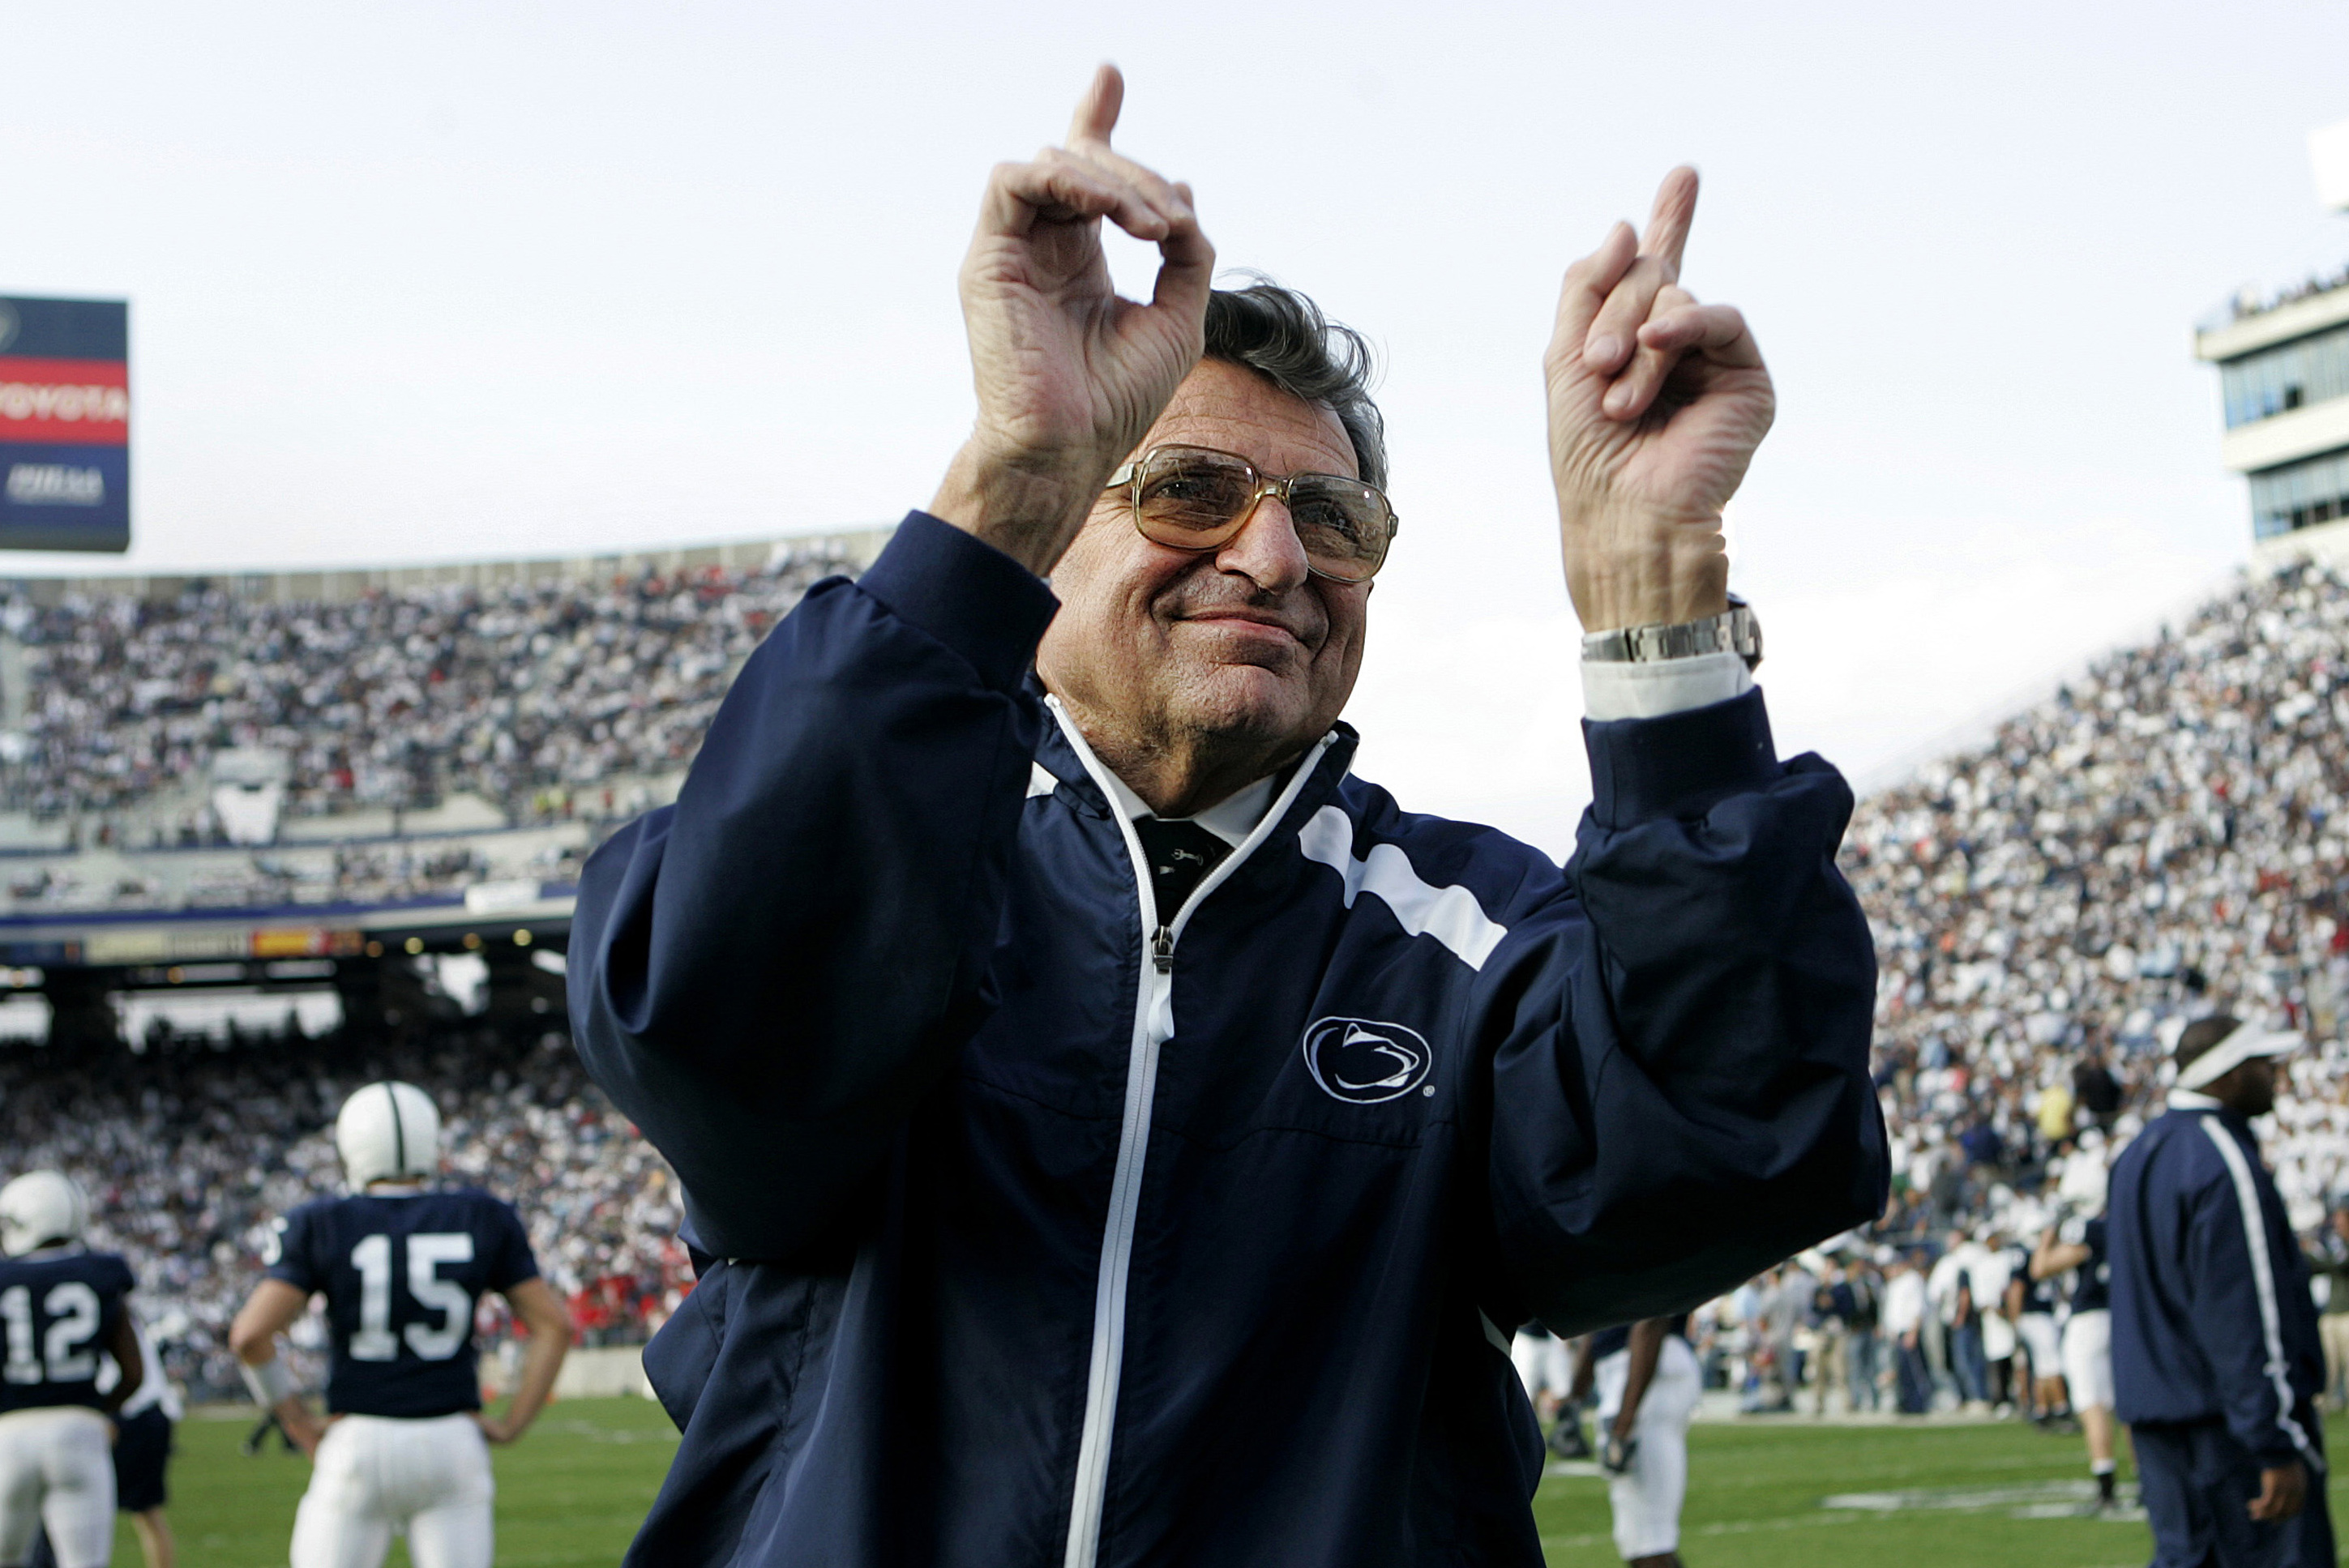 Penn State football coach Joe Paterno acknowledges the crowd before an NCAA college football game against Wisconsin in State College, Pa. on Nov. 5, 2005.